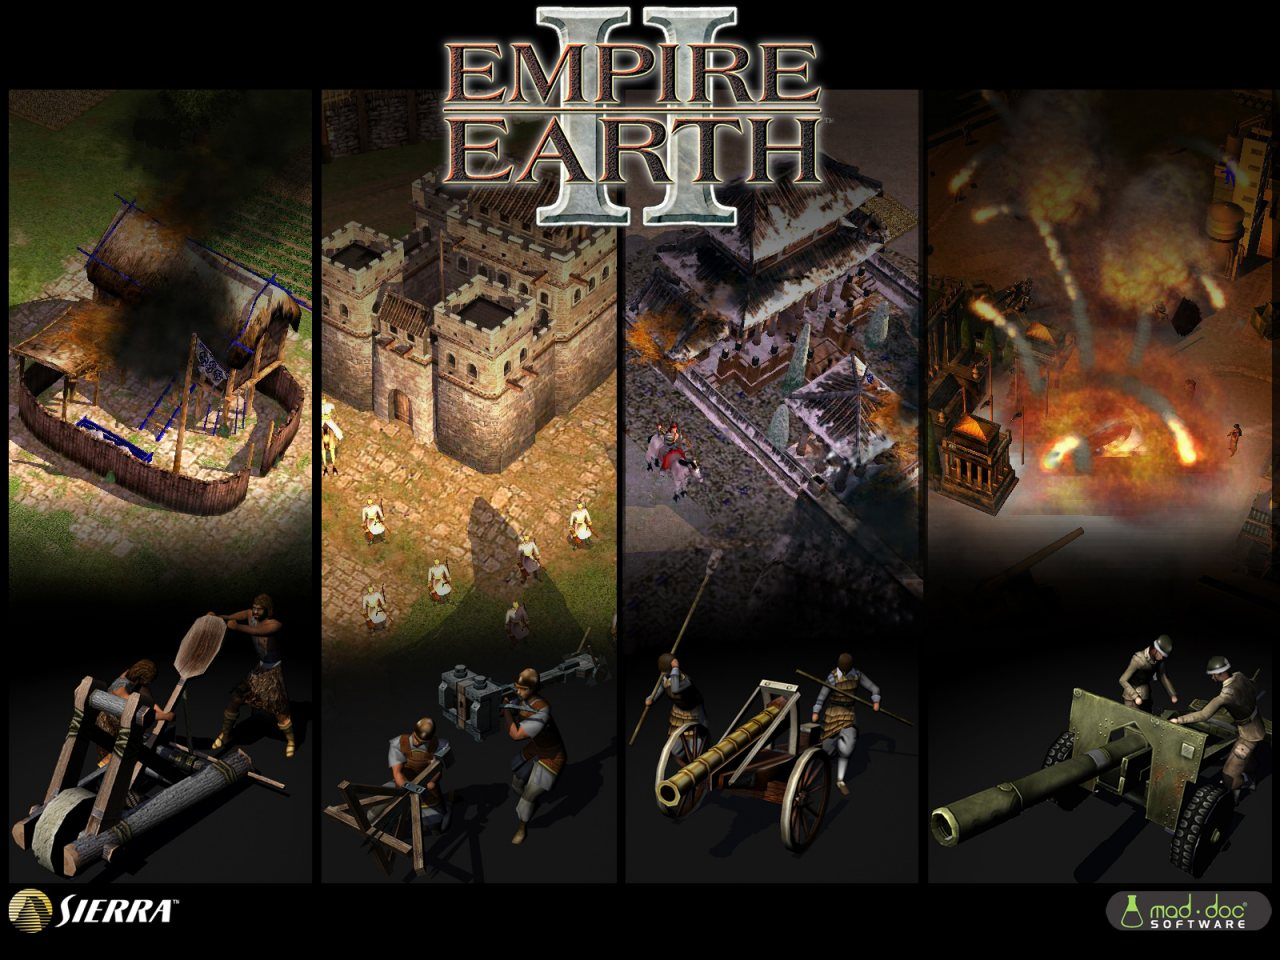 Empire earth ii empire earth wiki fandom powered by wikia empire earth 2 3 gumiabroncs Images